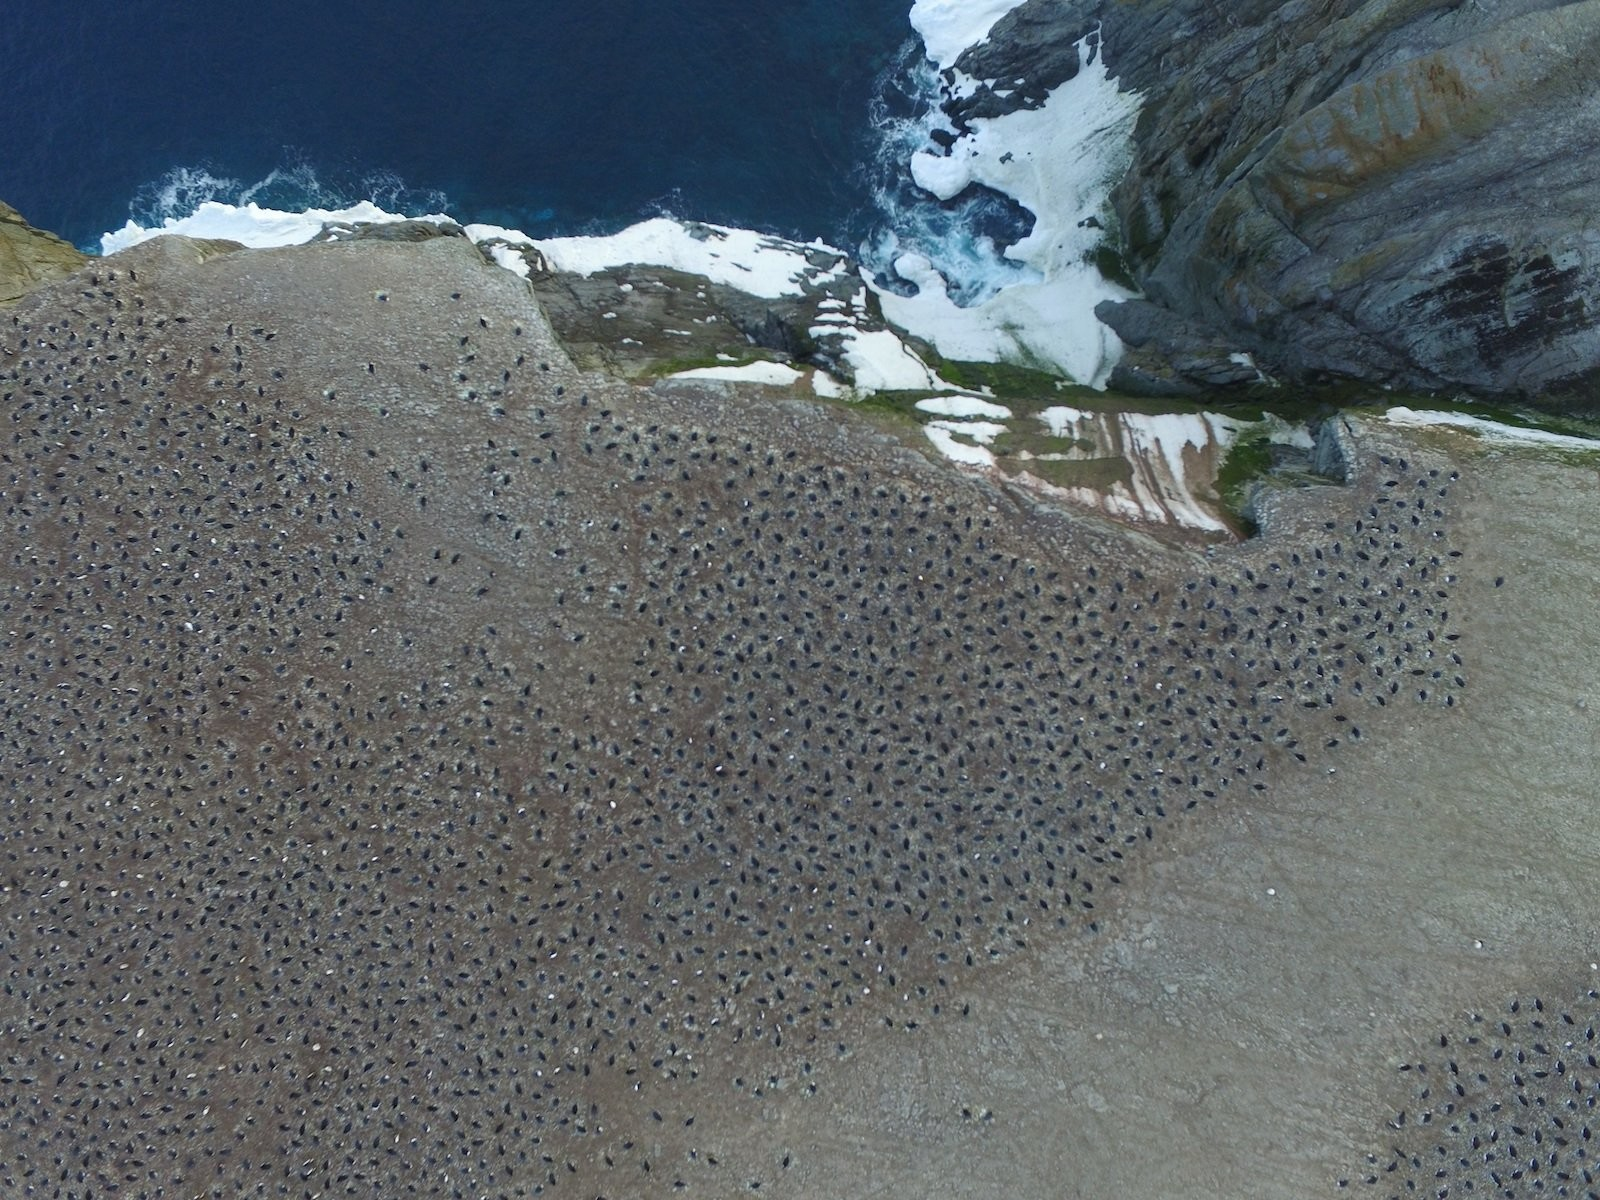 A 'supercolony' of 1.5 million penguins has been discovered - by accident